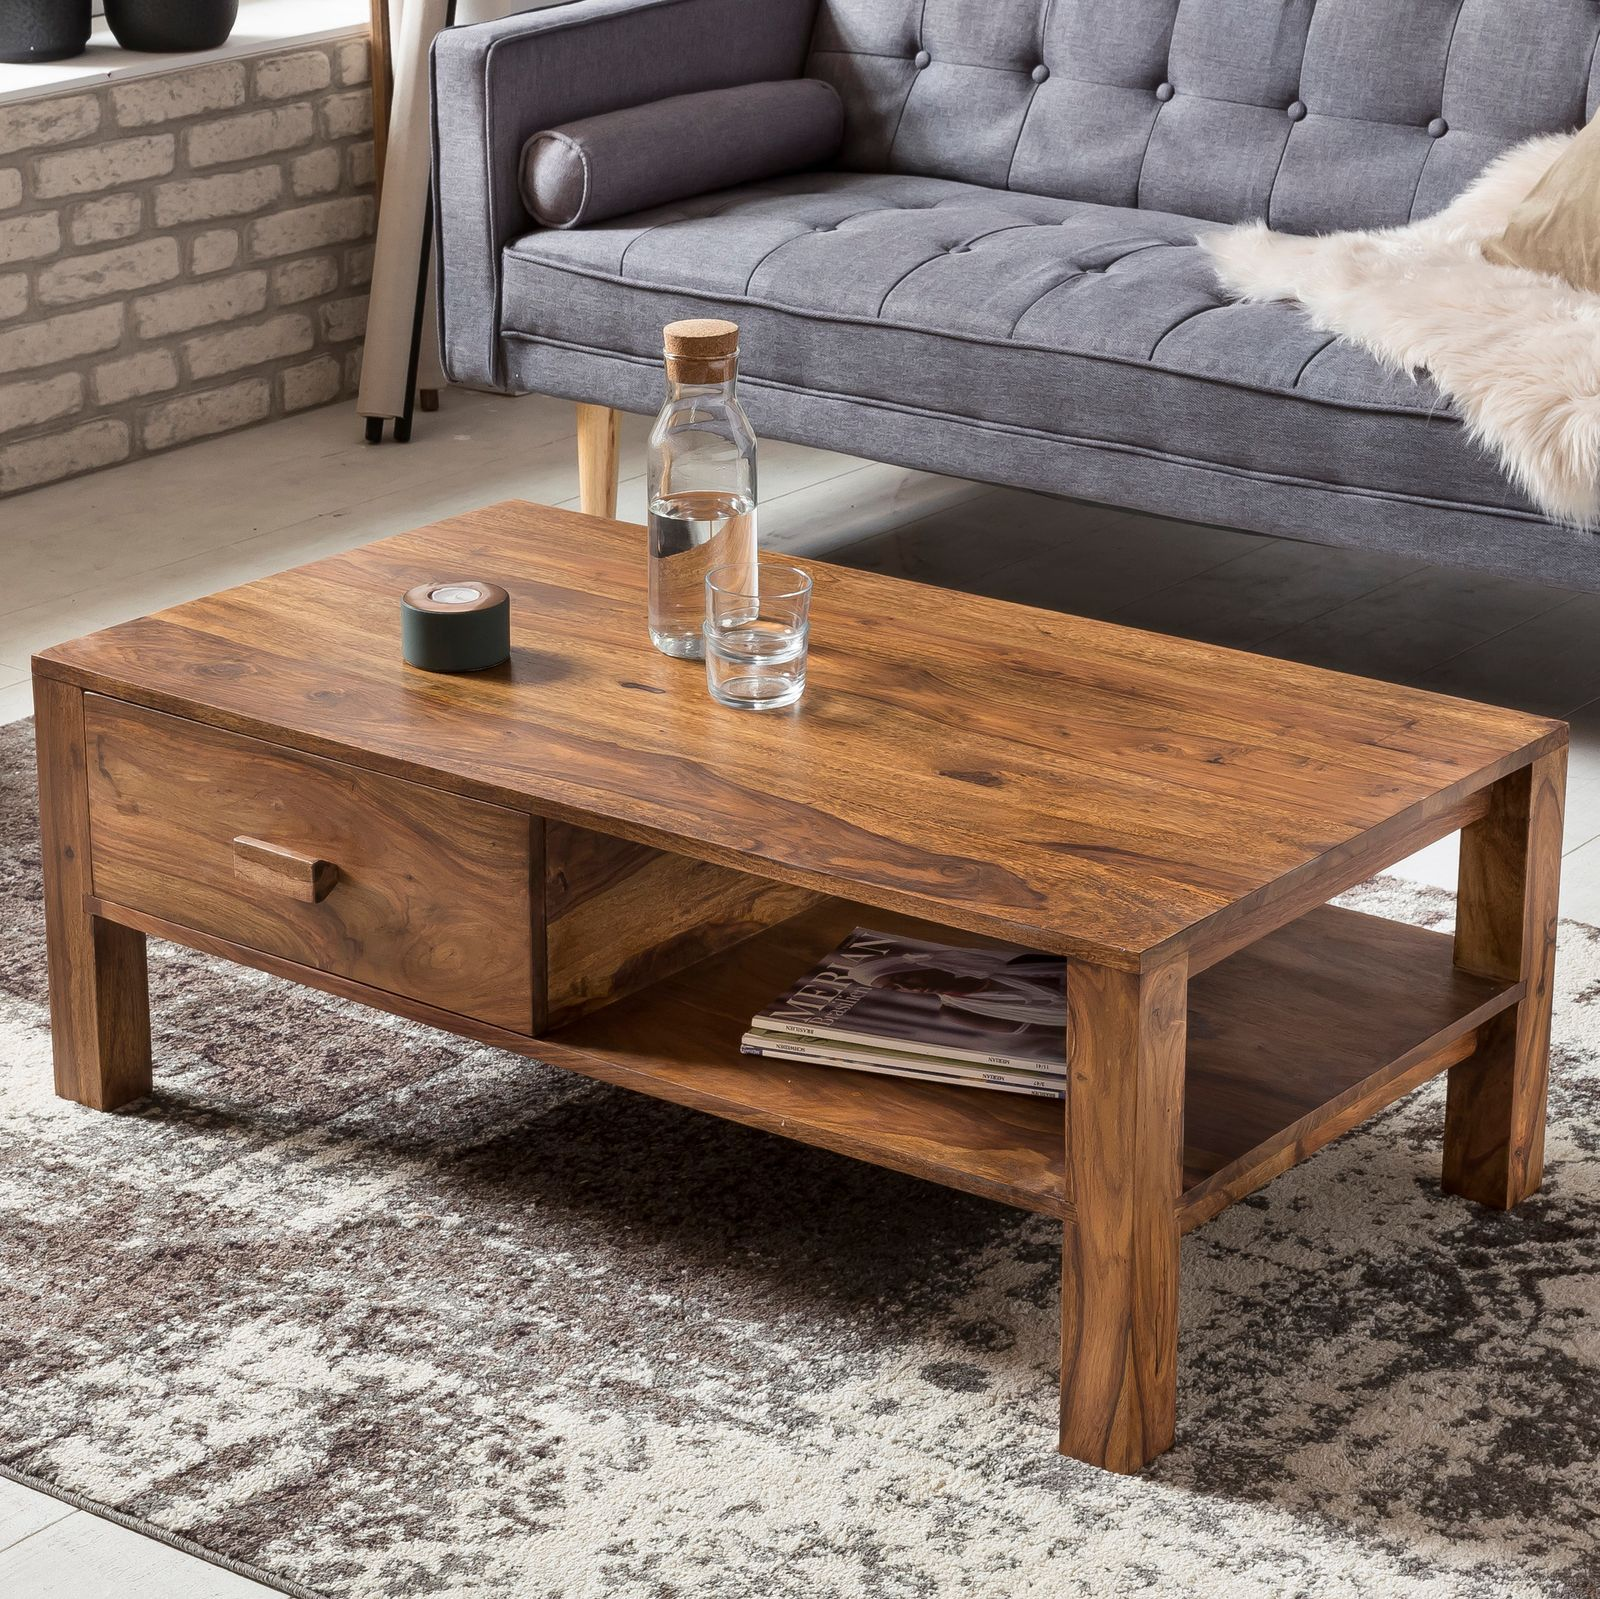 Buy Solid Wood Capital Coffee Table With Shelf Drawer Online New